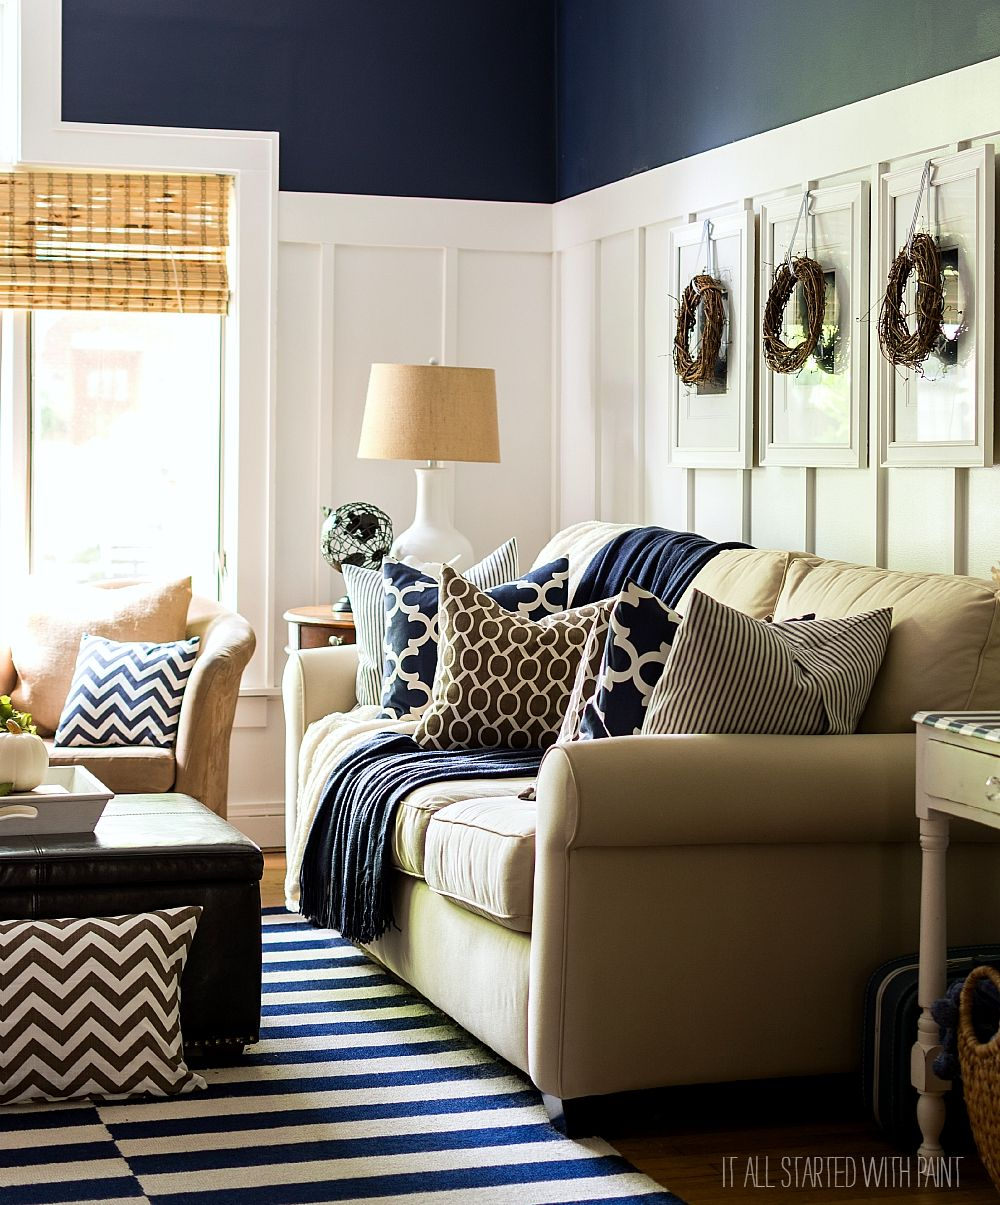 Decorating Ideas For Living Room With Brown Couch Wall Clock In As Per Vastu Pictures Of Rooms Decorated Blue 8 17 Nitimifotografie Nl Fall Decor Navy And Favorite Finds Rh Pinterest Com